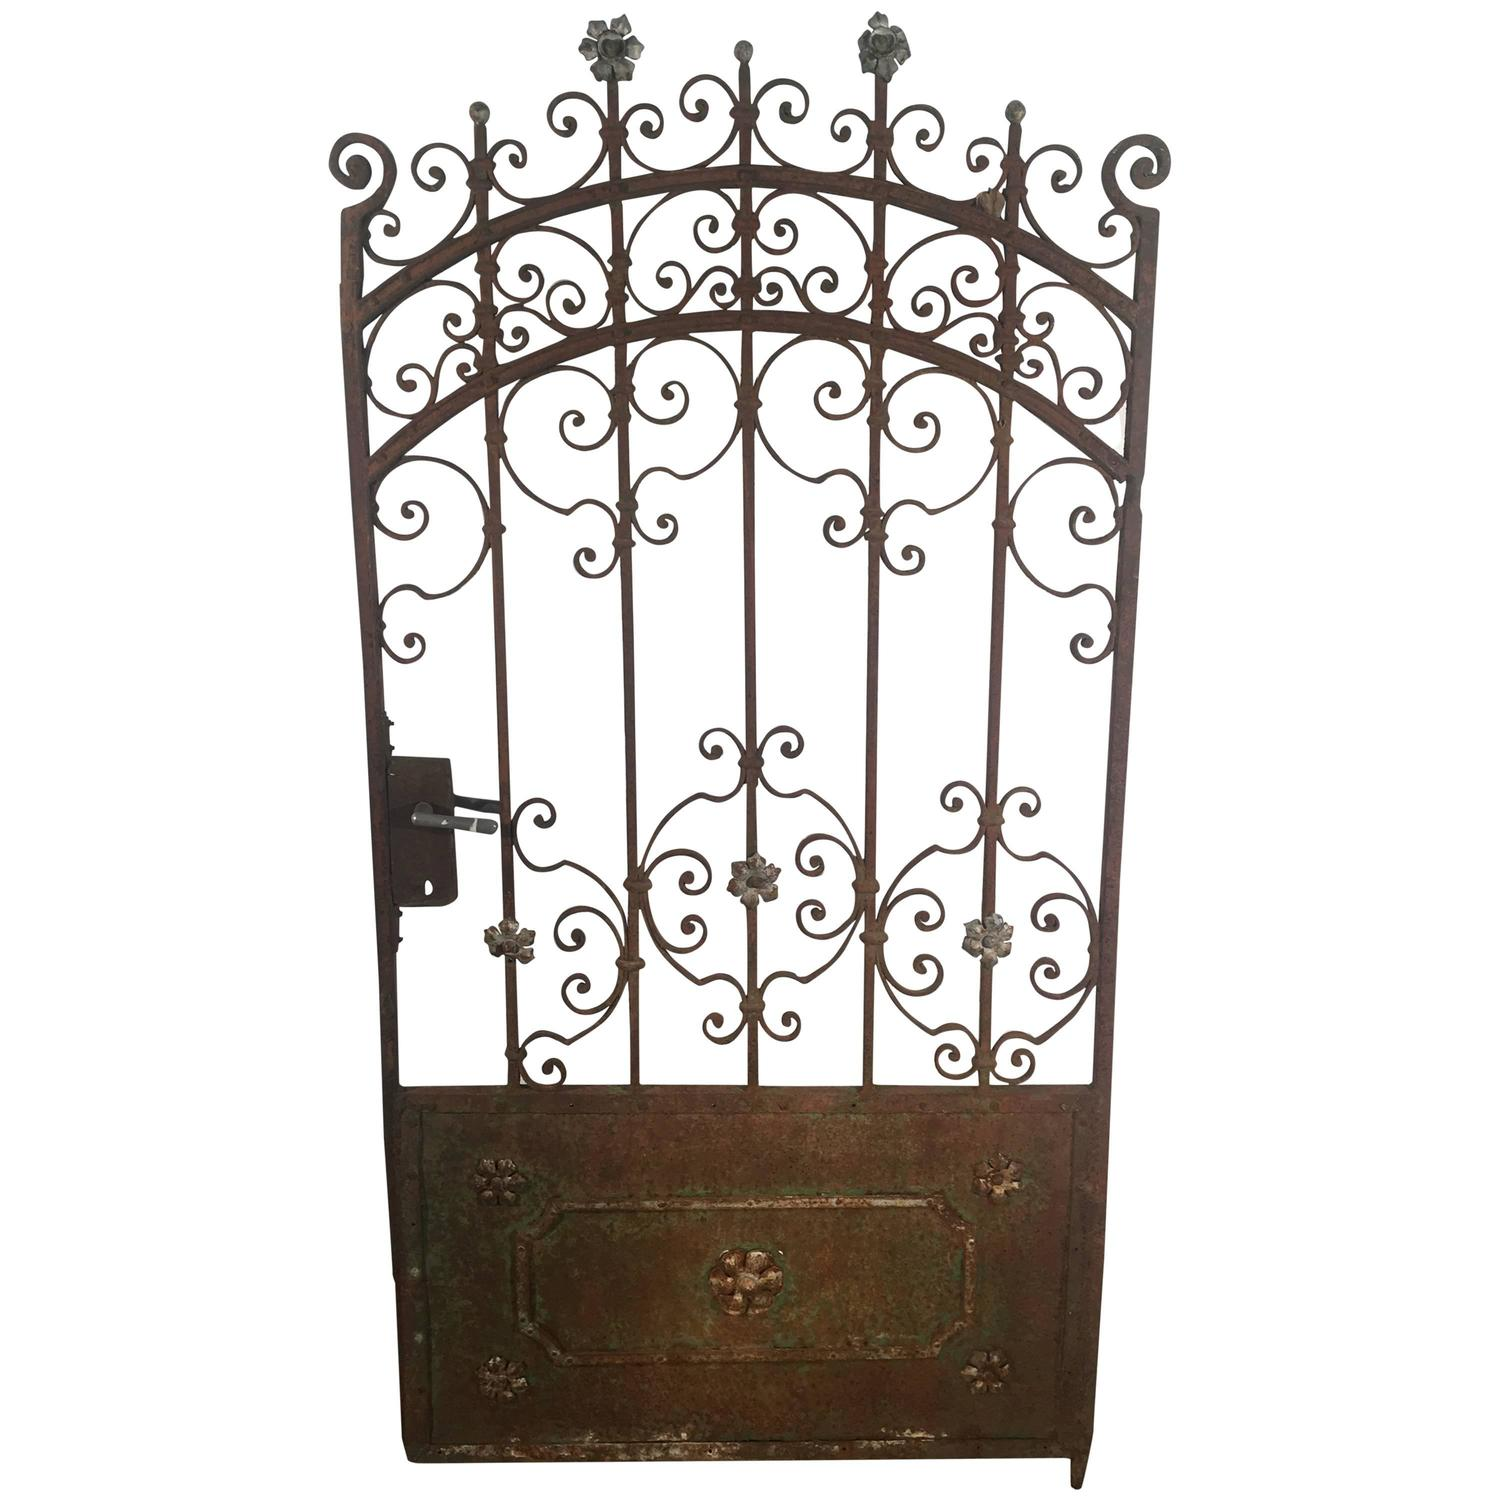 ornate wrought iron gate arched decorative french beaux arts wrought iron garden gate and crafts gates for sale at 1stdibs